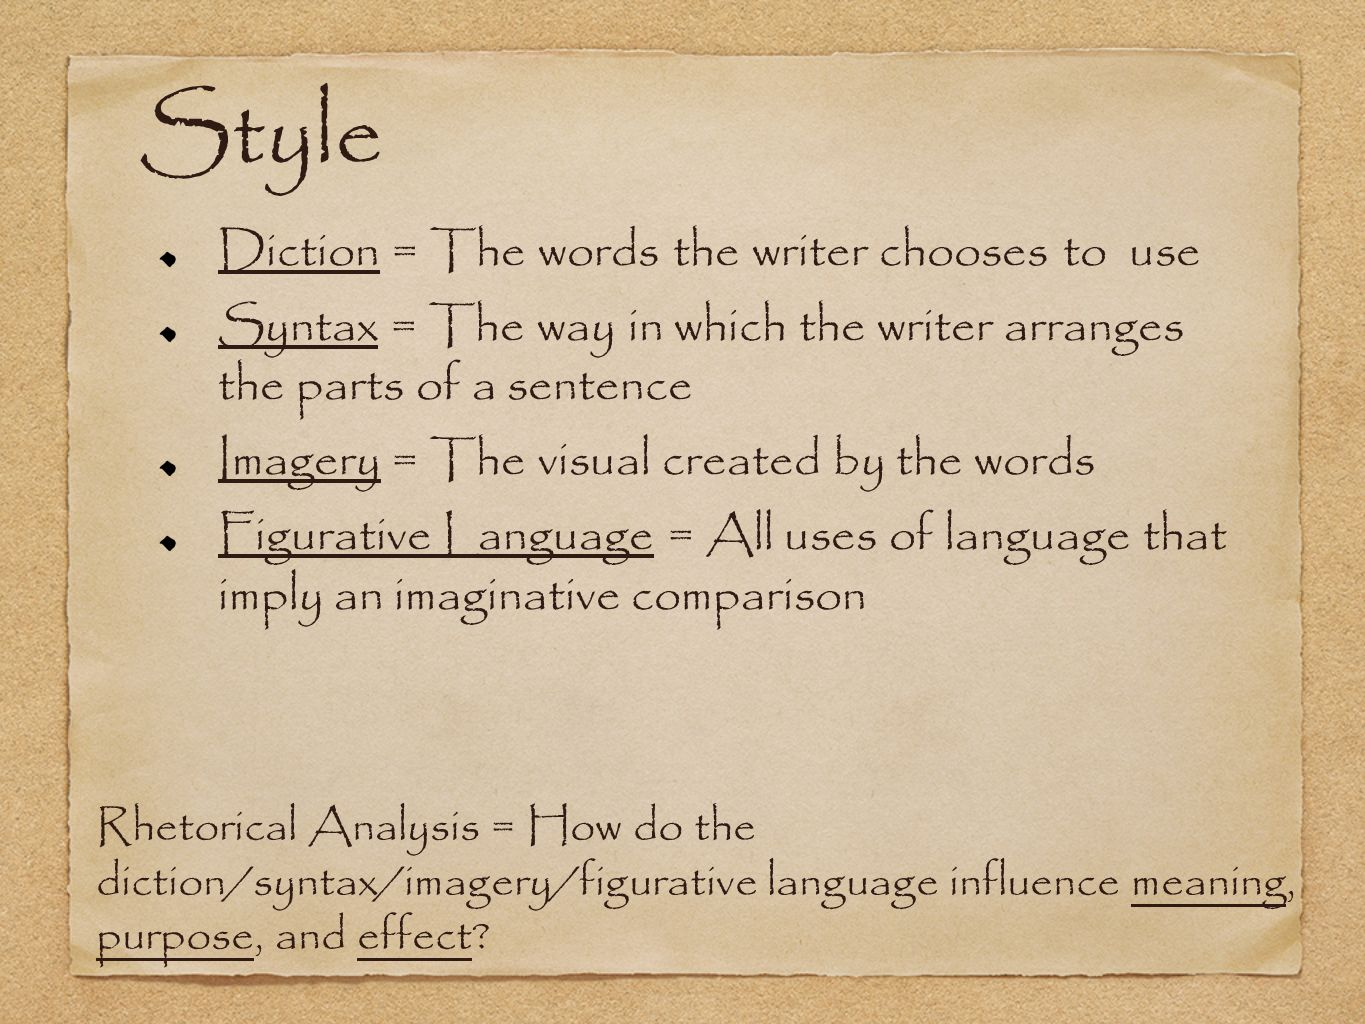 Style Diction = The words the writer chooses to use Syntax = The way in which the writer arranges the parts of a sentence Imagery = The visual created by the words Figurative Language = All uses of language that imply an imaginative comparison Rhetorical Analysis = How do the diction/syntax/imagery/figurative language influence meaning, purpose, and effect